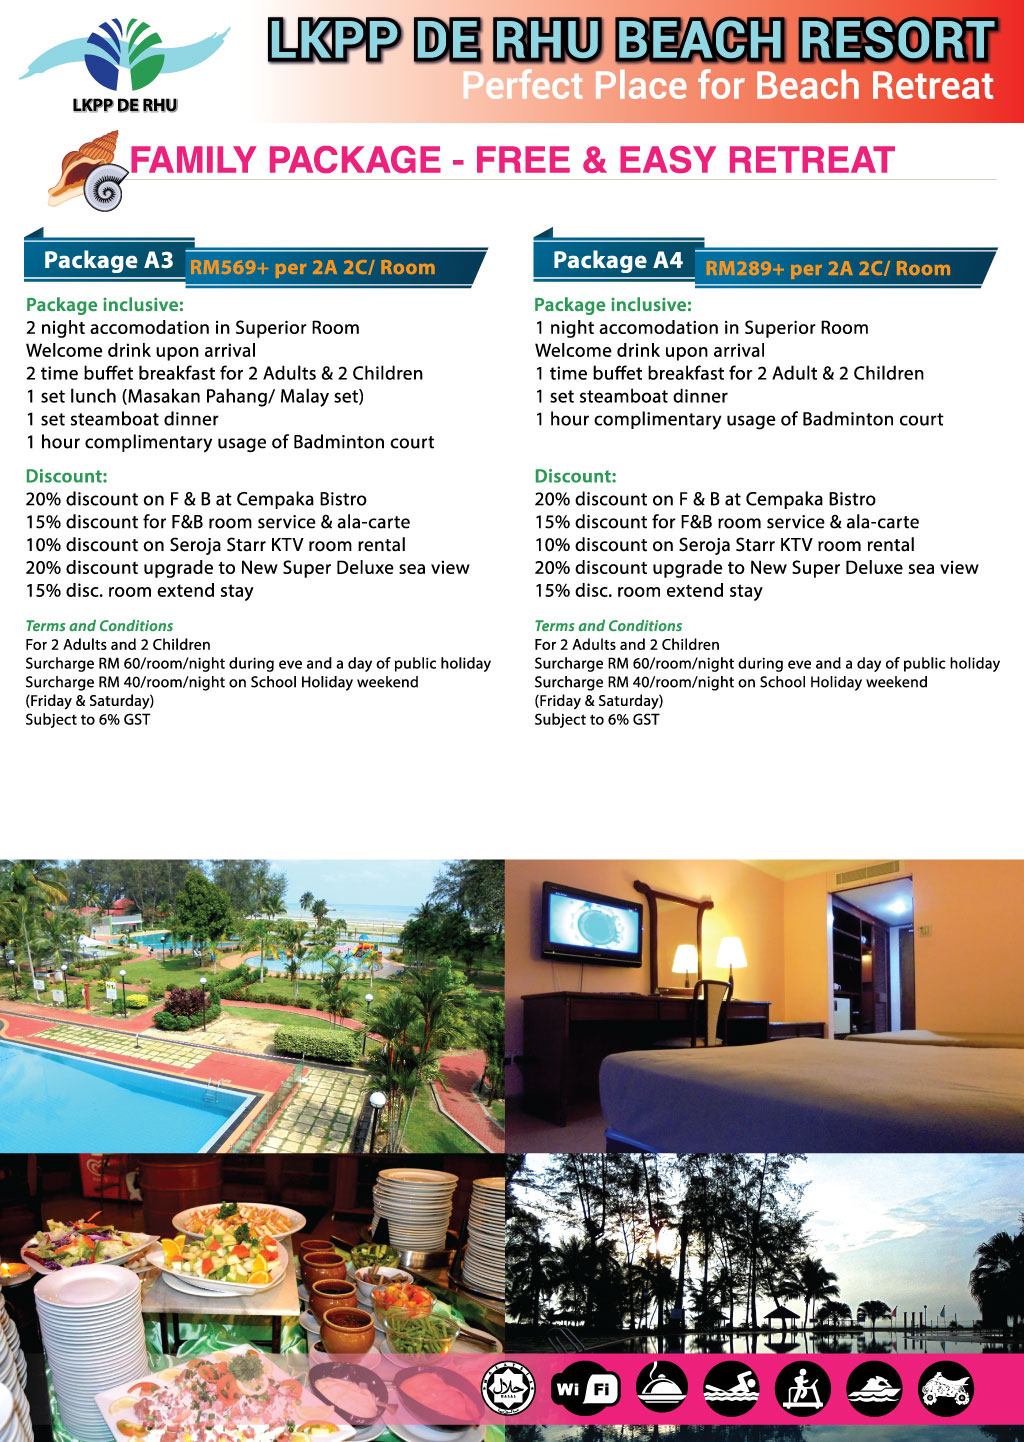 De-Rhu-Family-Holiday-Package---Free-&-Easy-Retreat-2016-back-page